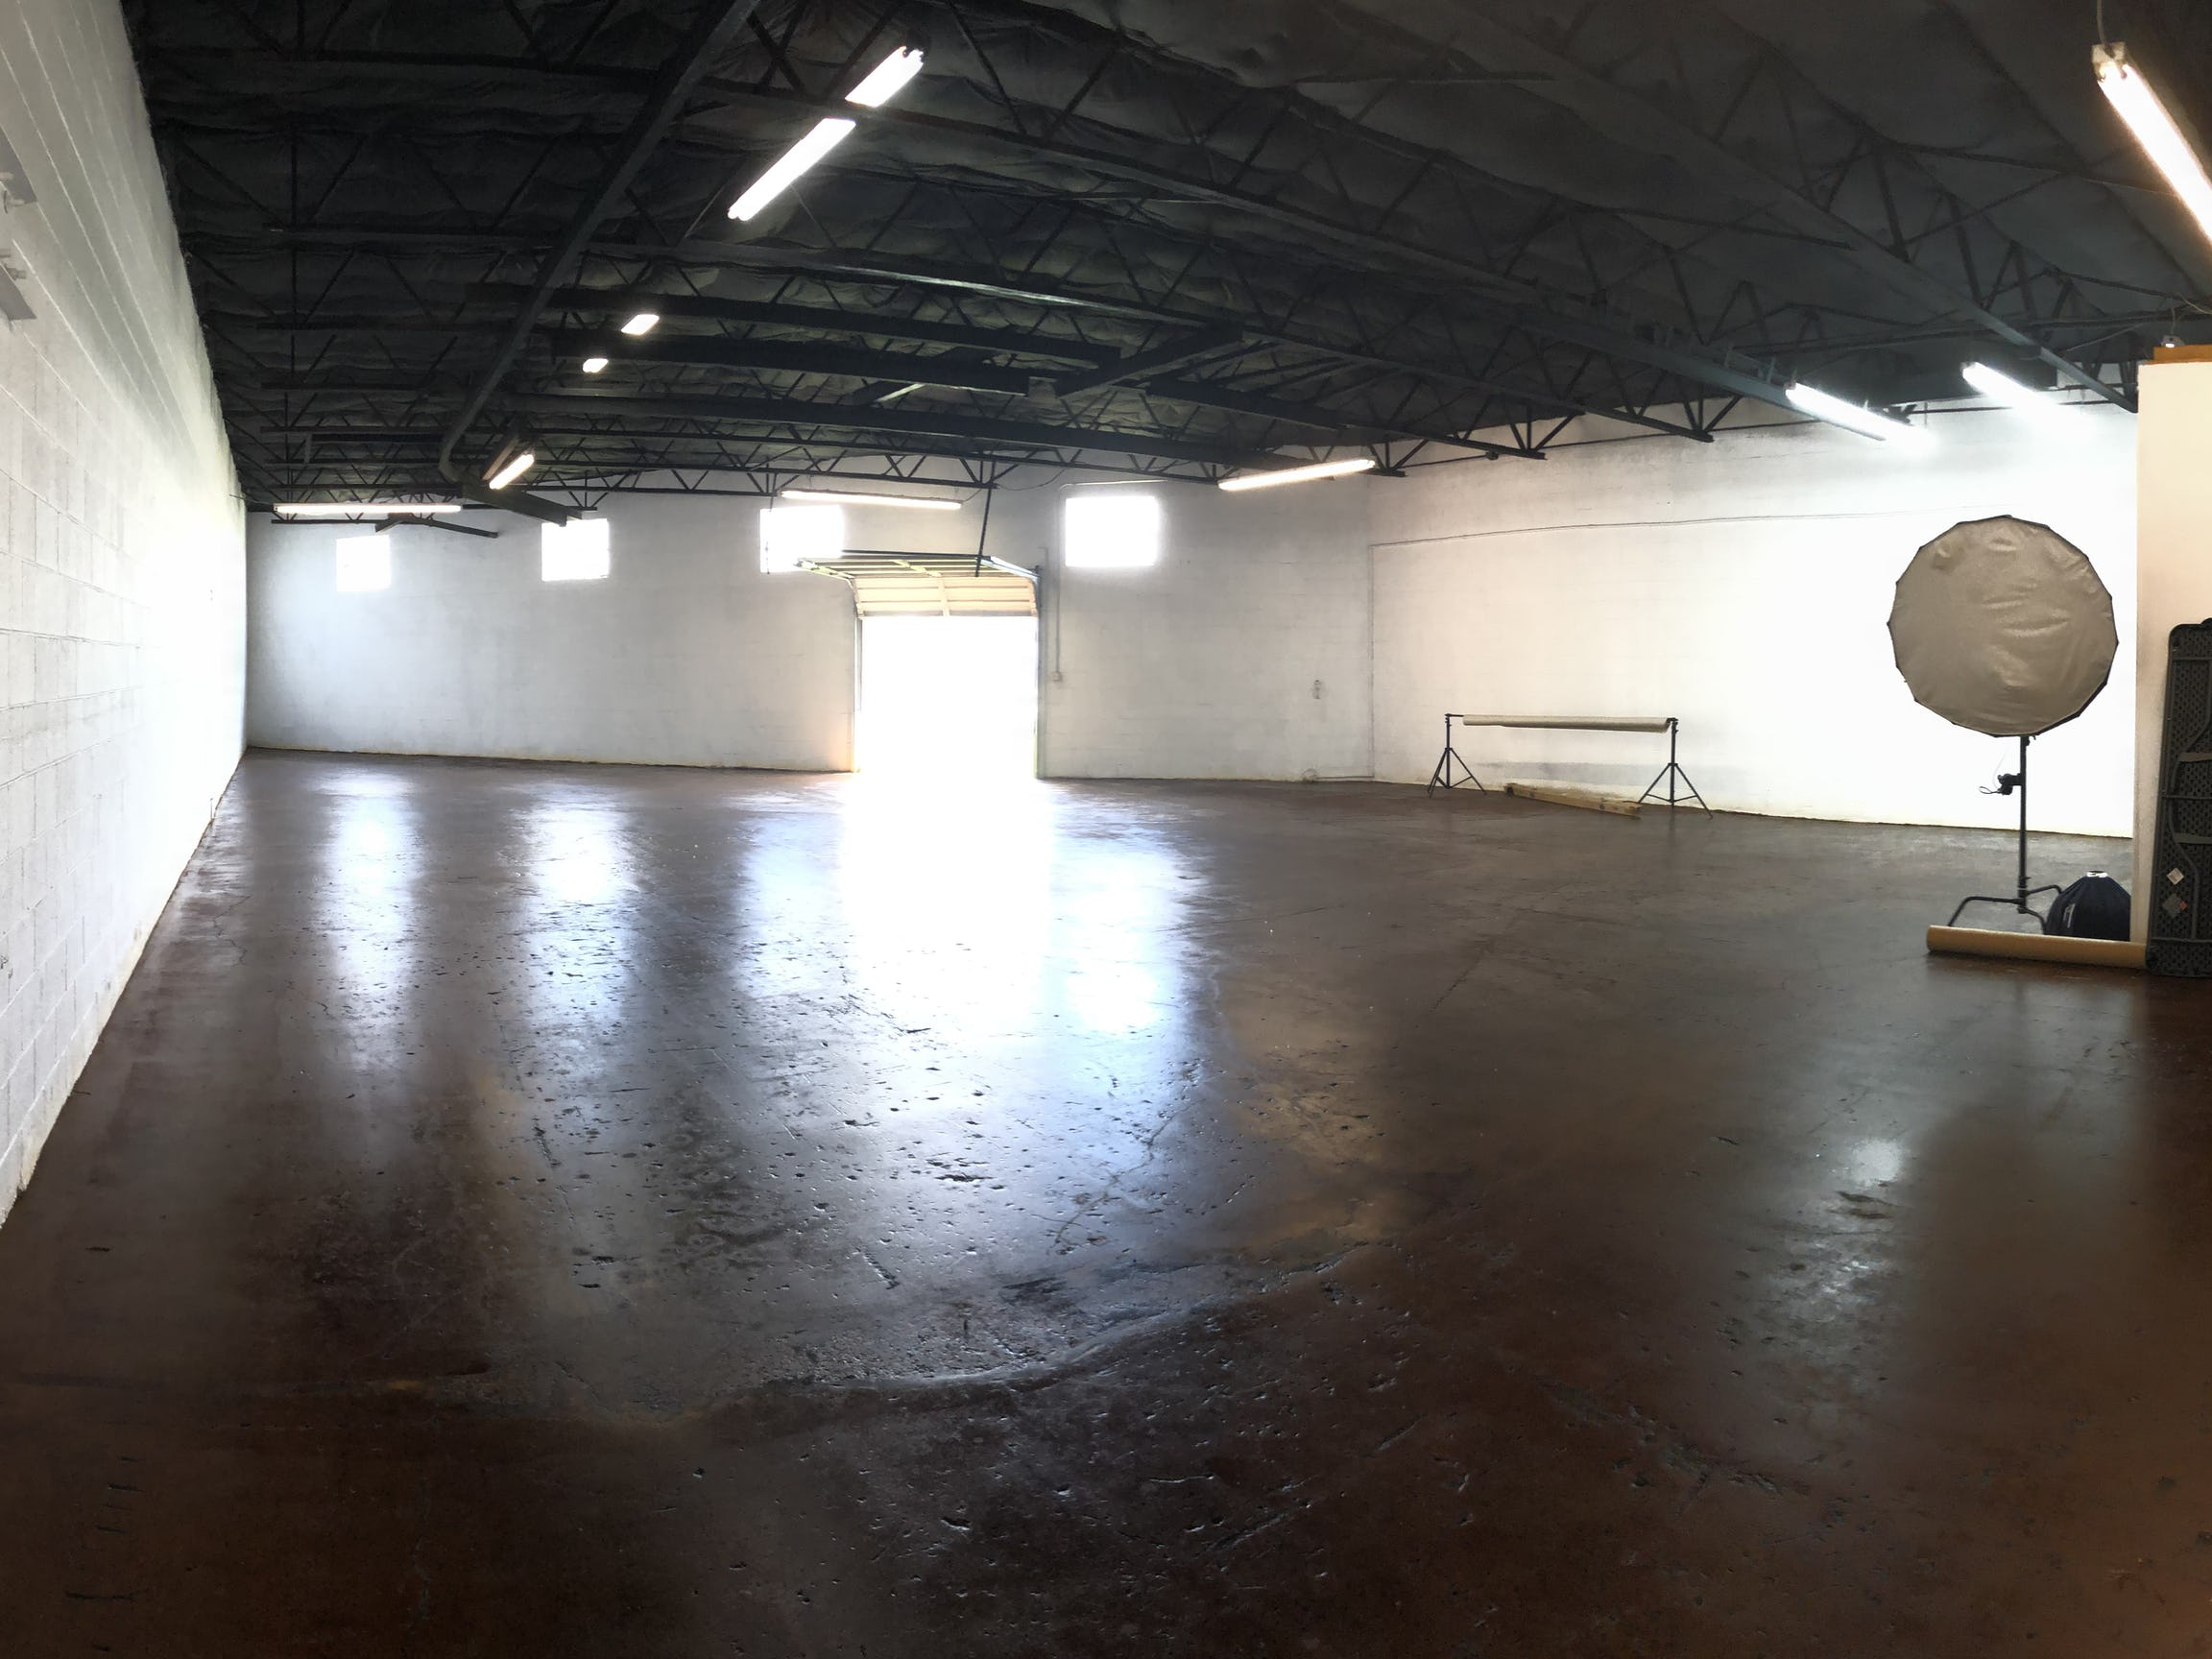 The Gallery - rehearsal space rental rent space near me